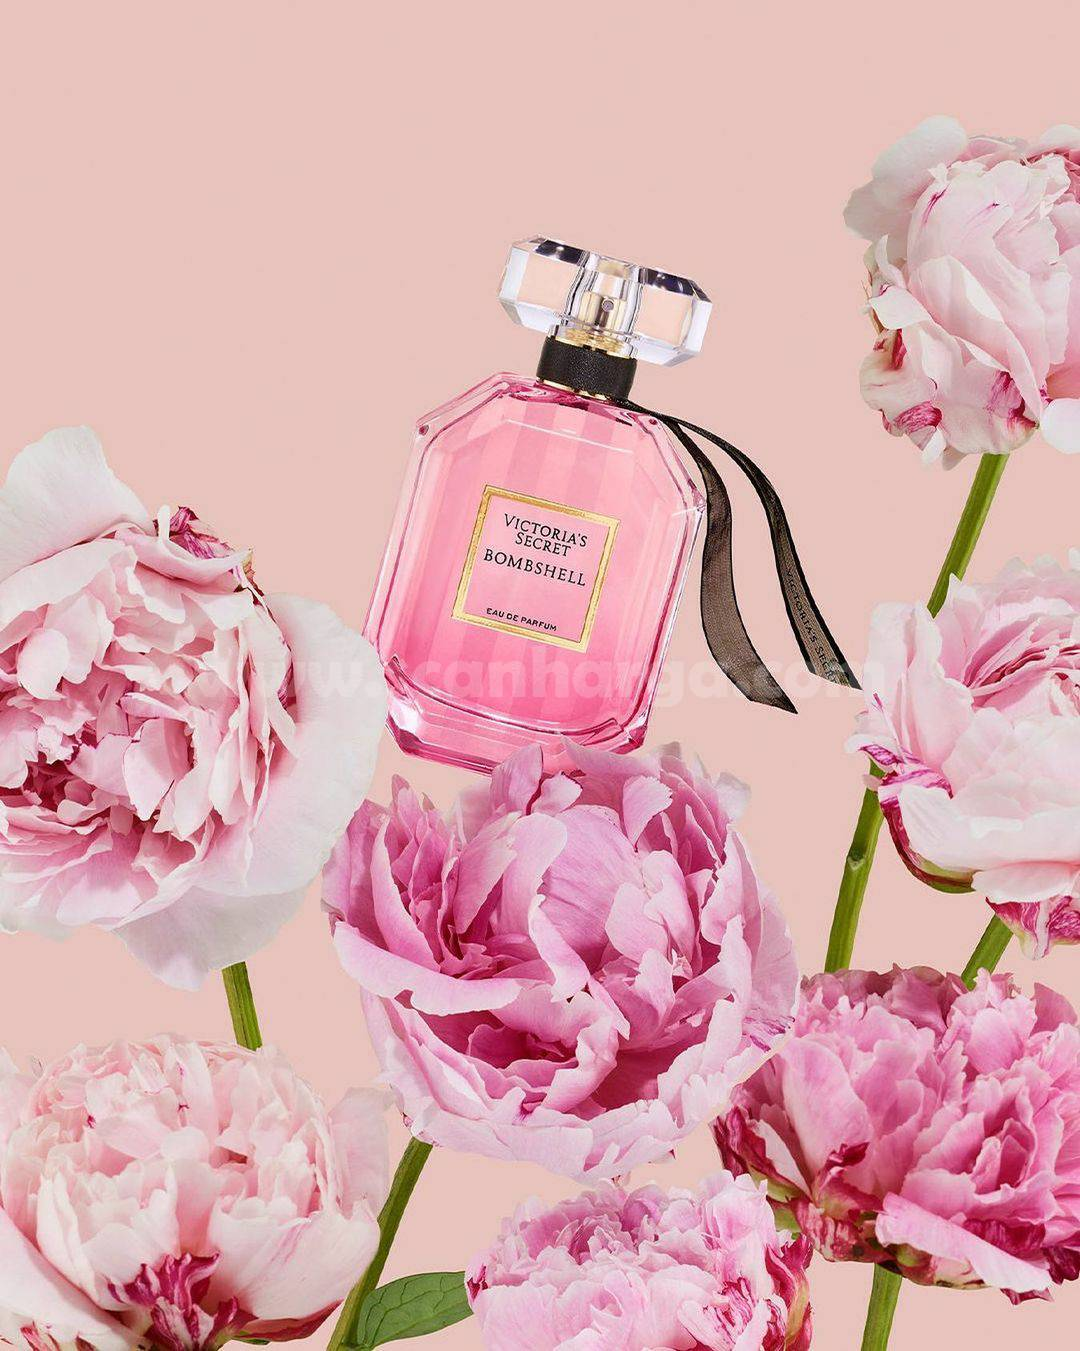 Victoria's Secret Promo Buy 3 get 2 FREE or Buy 2 get 1 FREE! on Beauty & Accessories